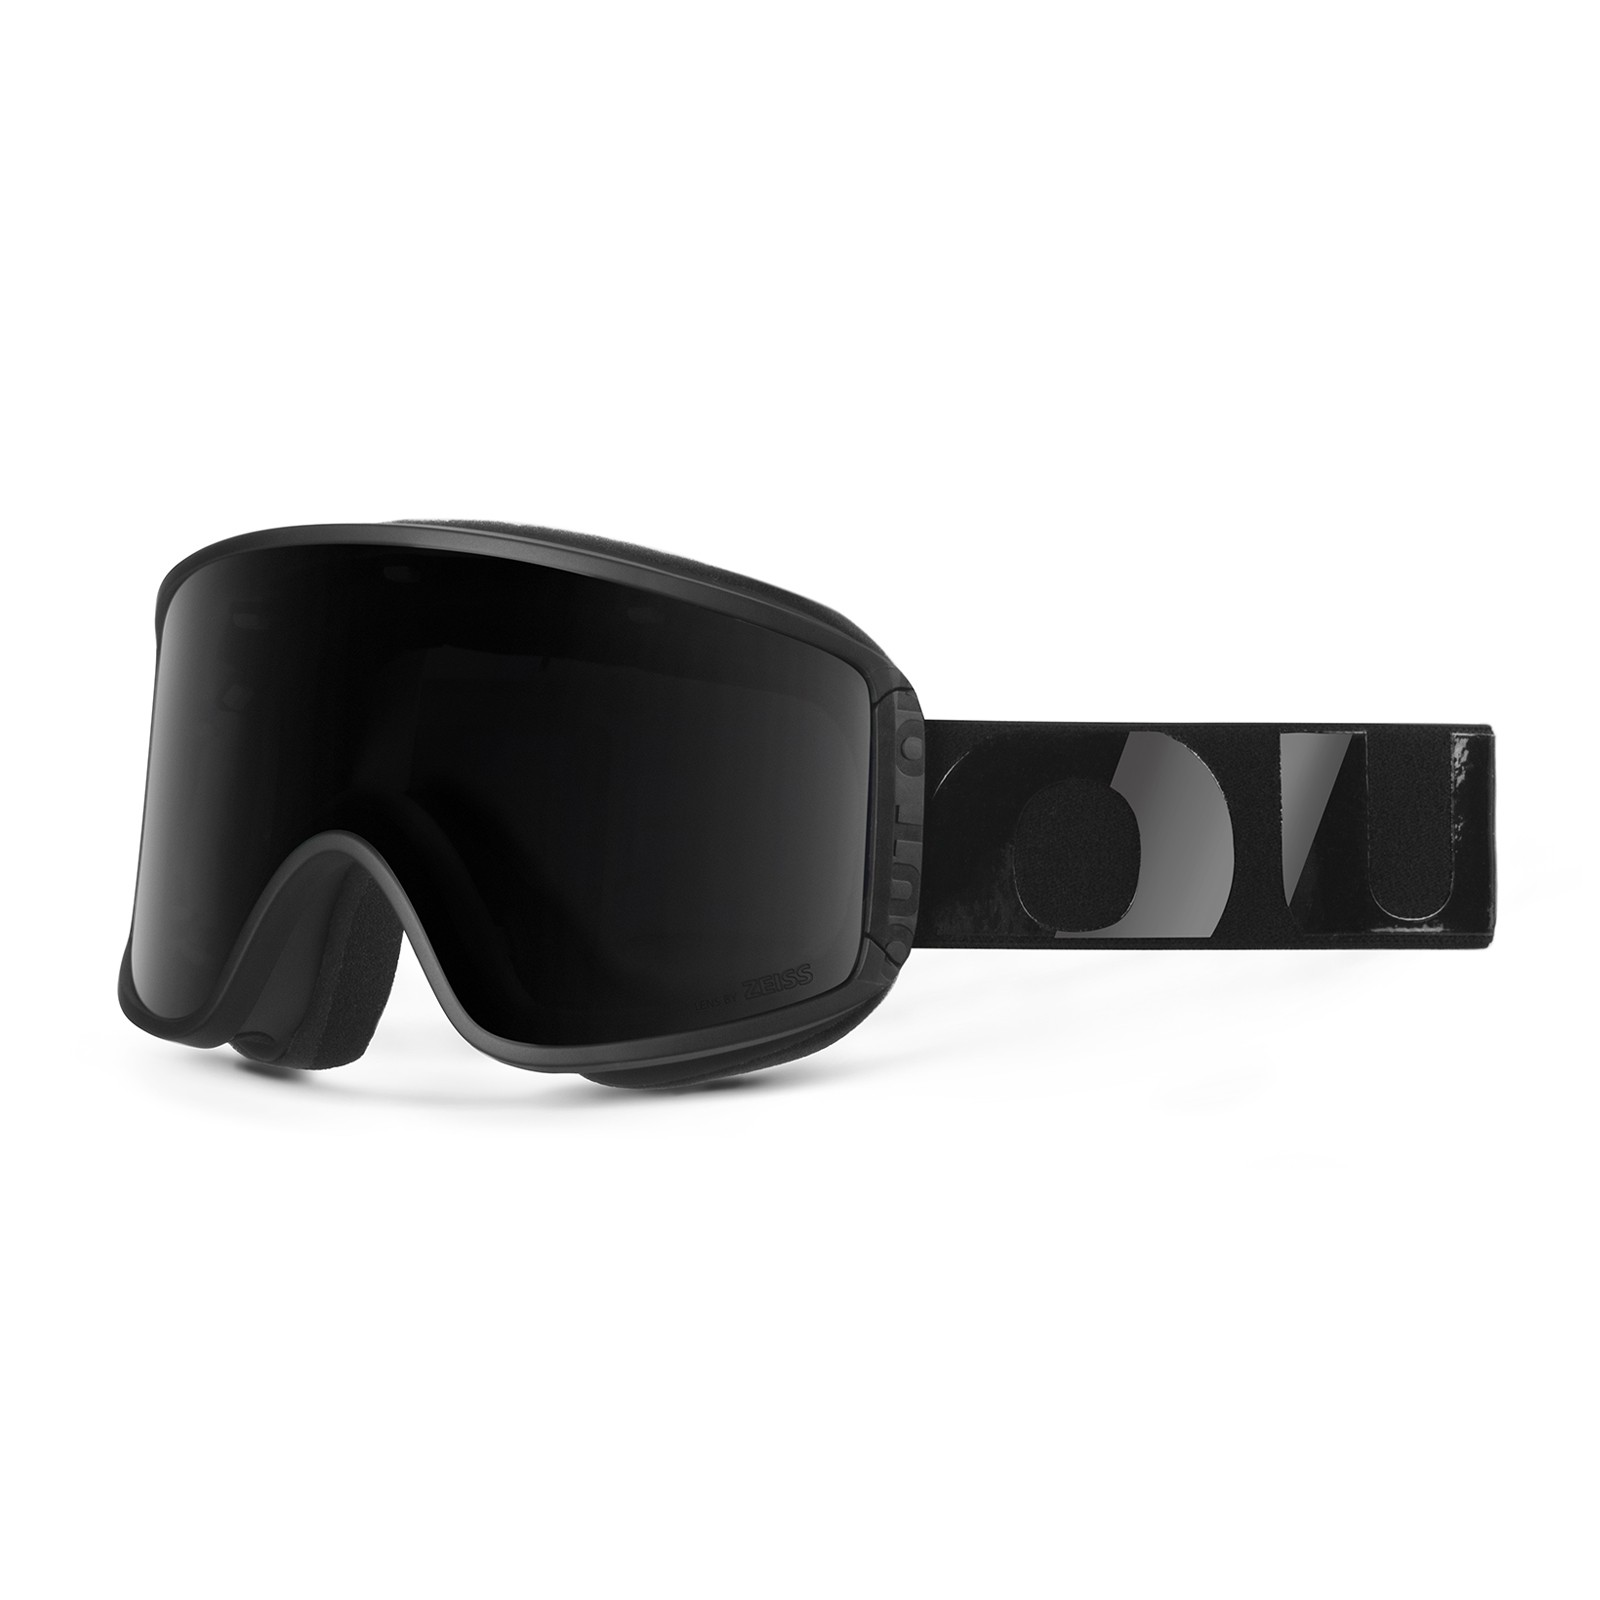 Shift Black silicone Smoke goggle